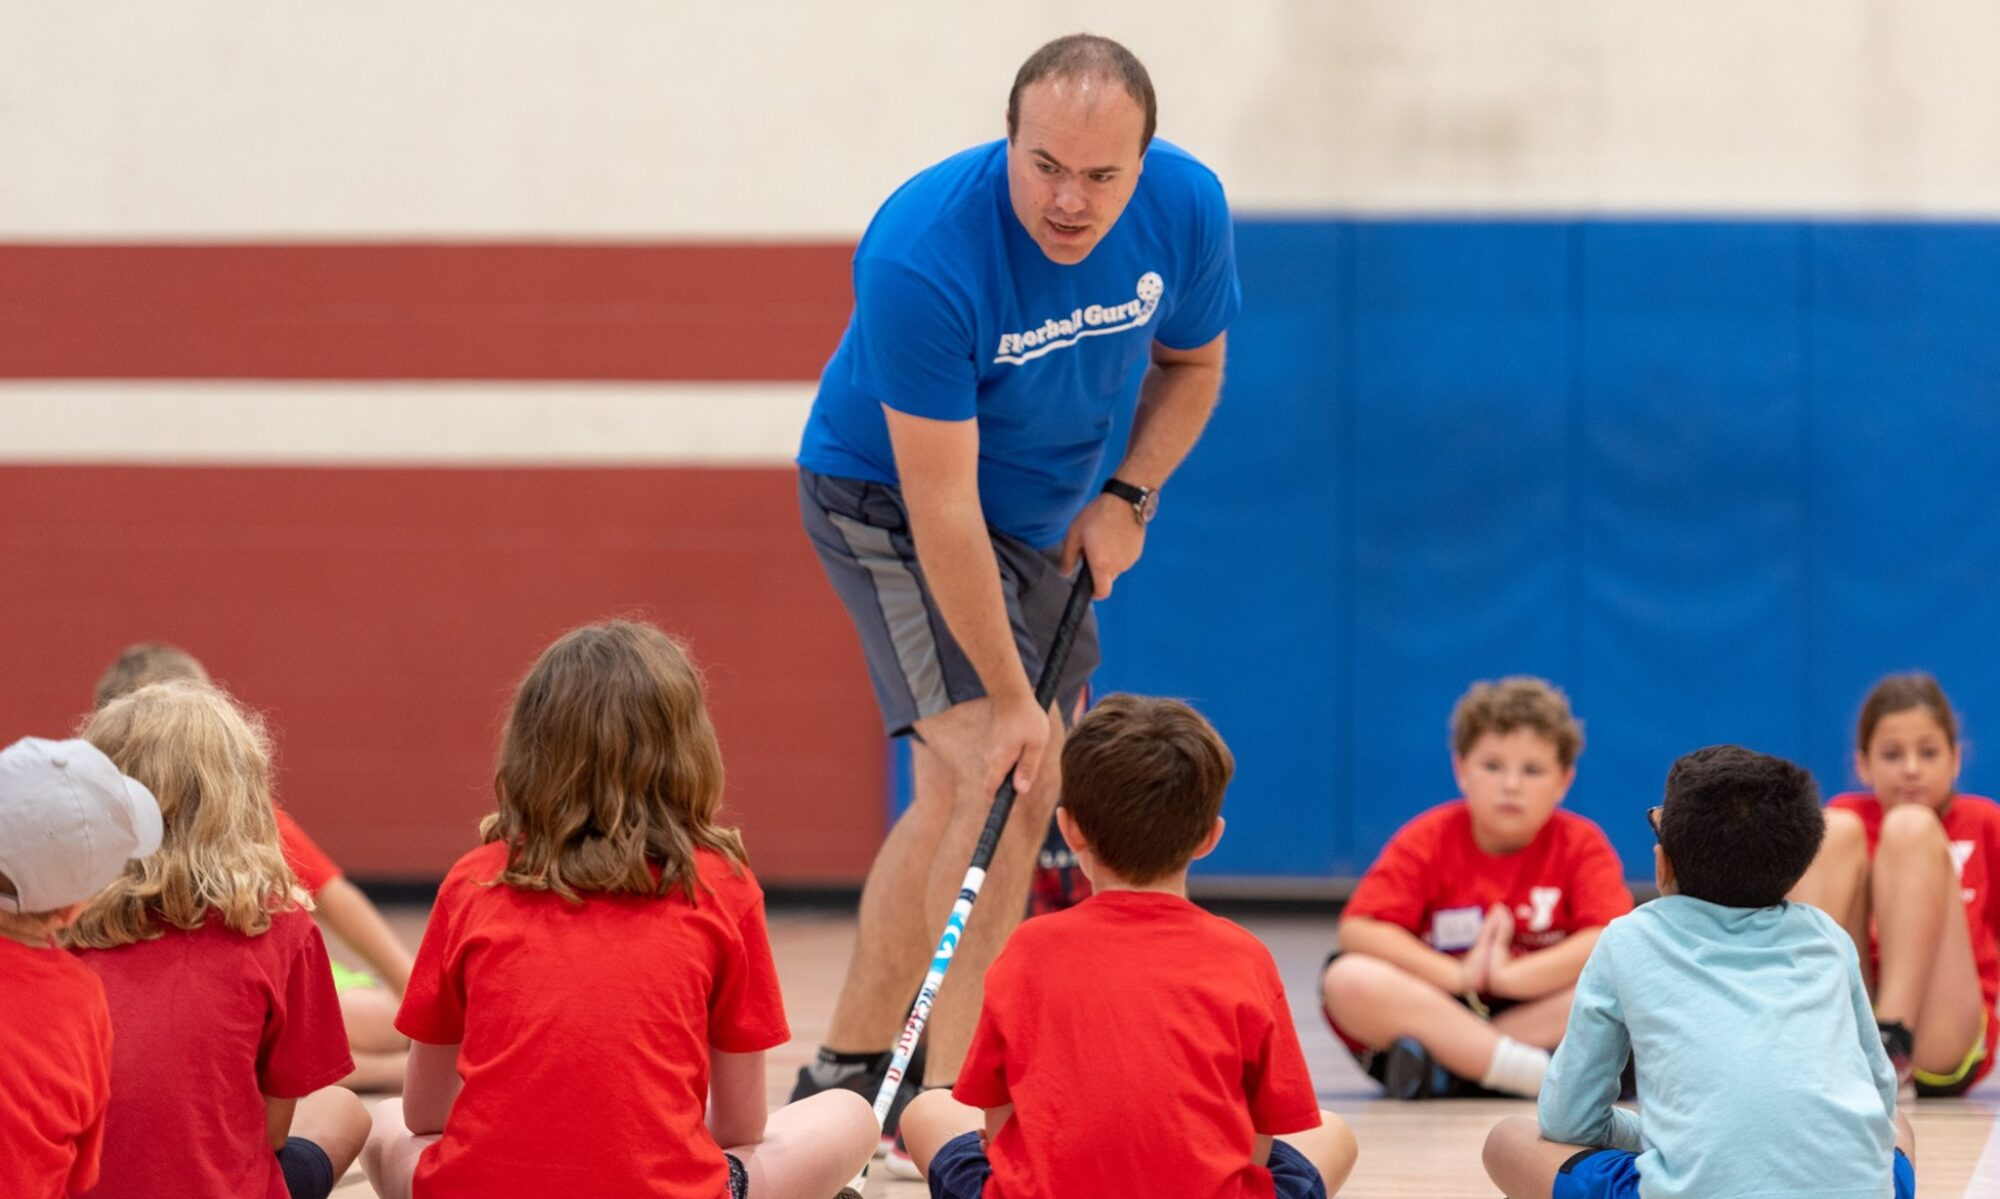 Floorball Guru